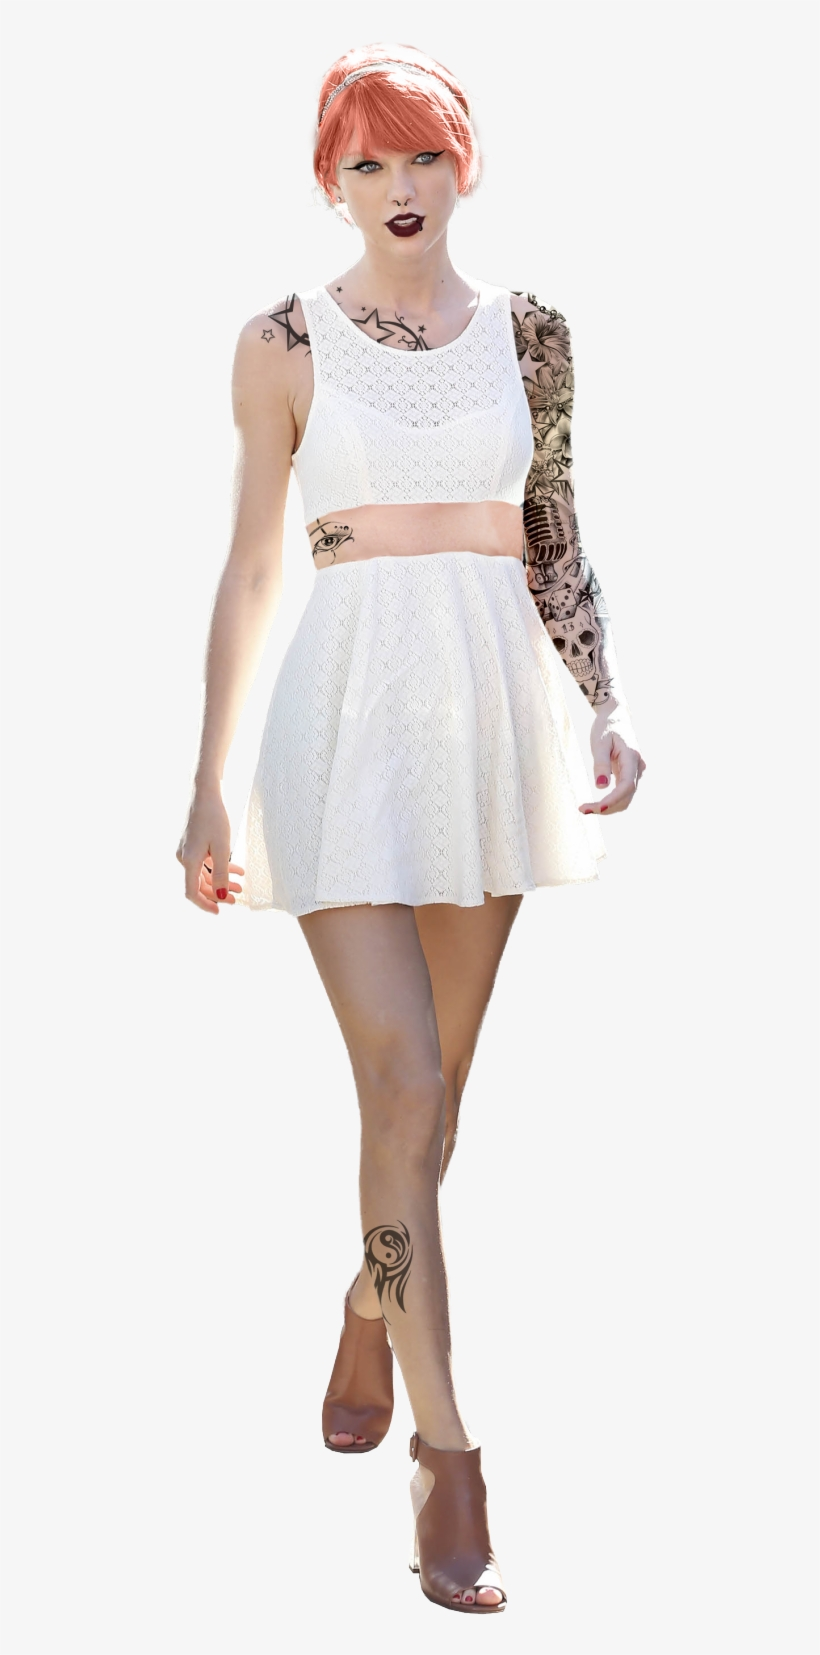 Punk Png Edit Of Taylor Swift Do Not Claim As Your A Line 1280x1703 Png Download Pngkit